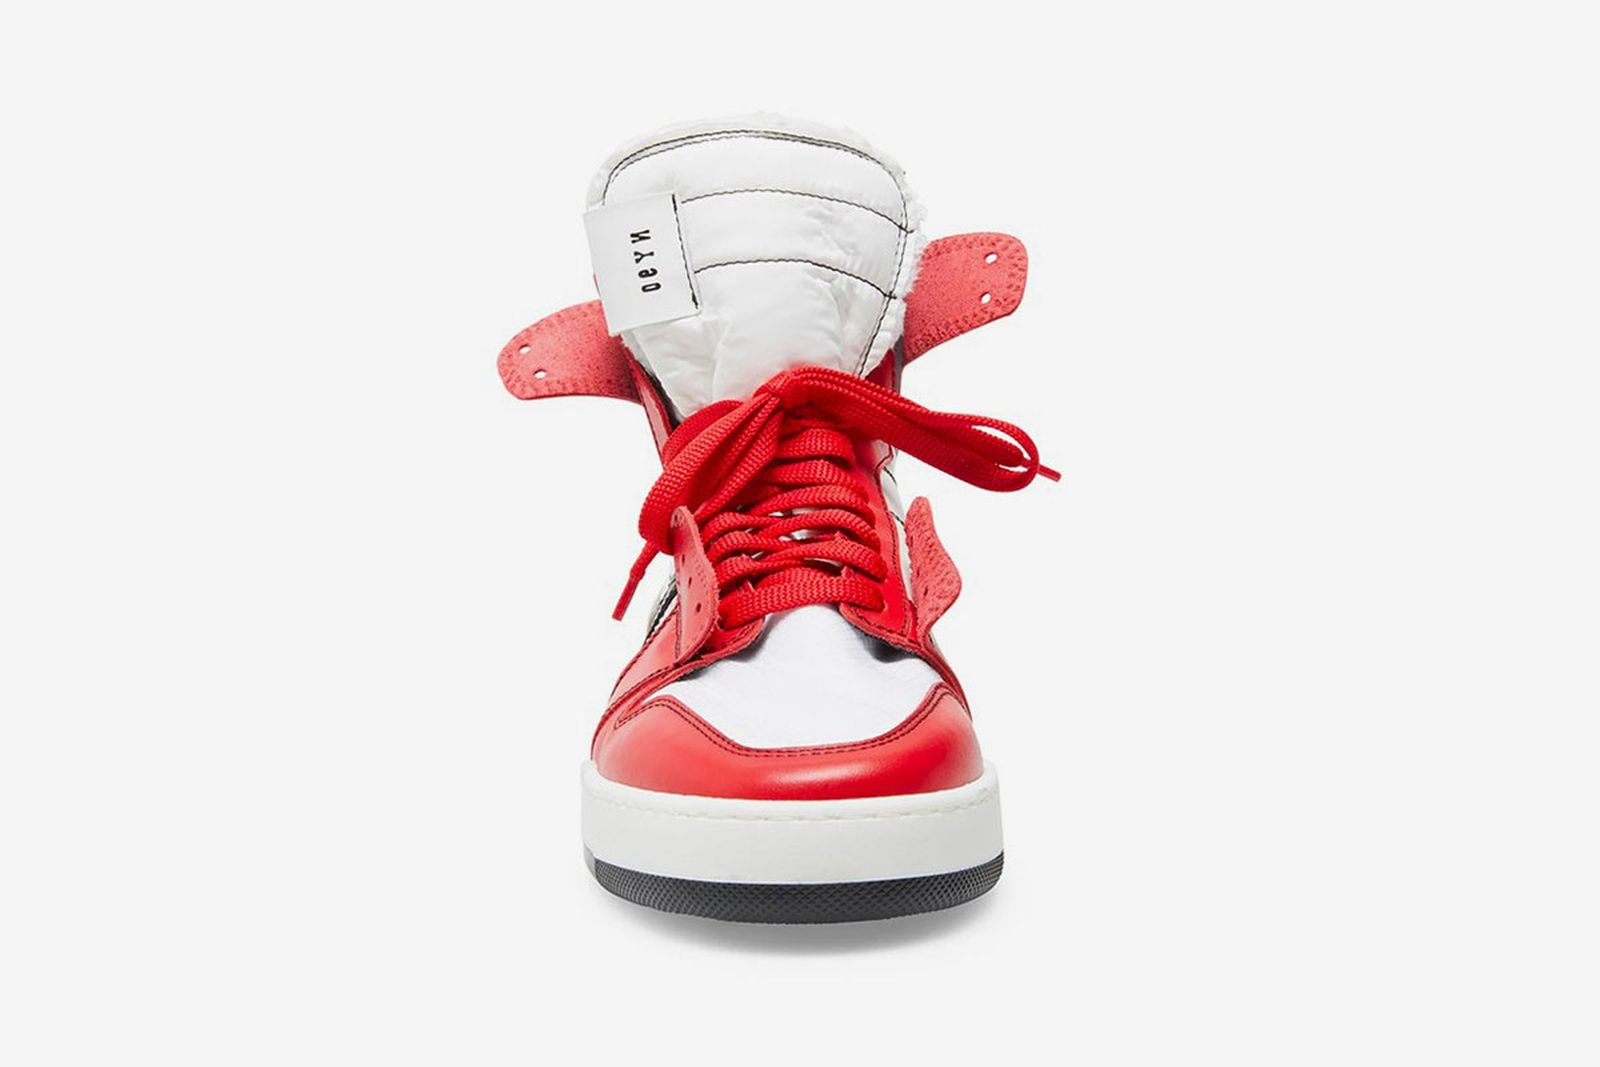 Steve Madden high-top sneaker red white